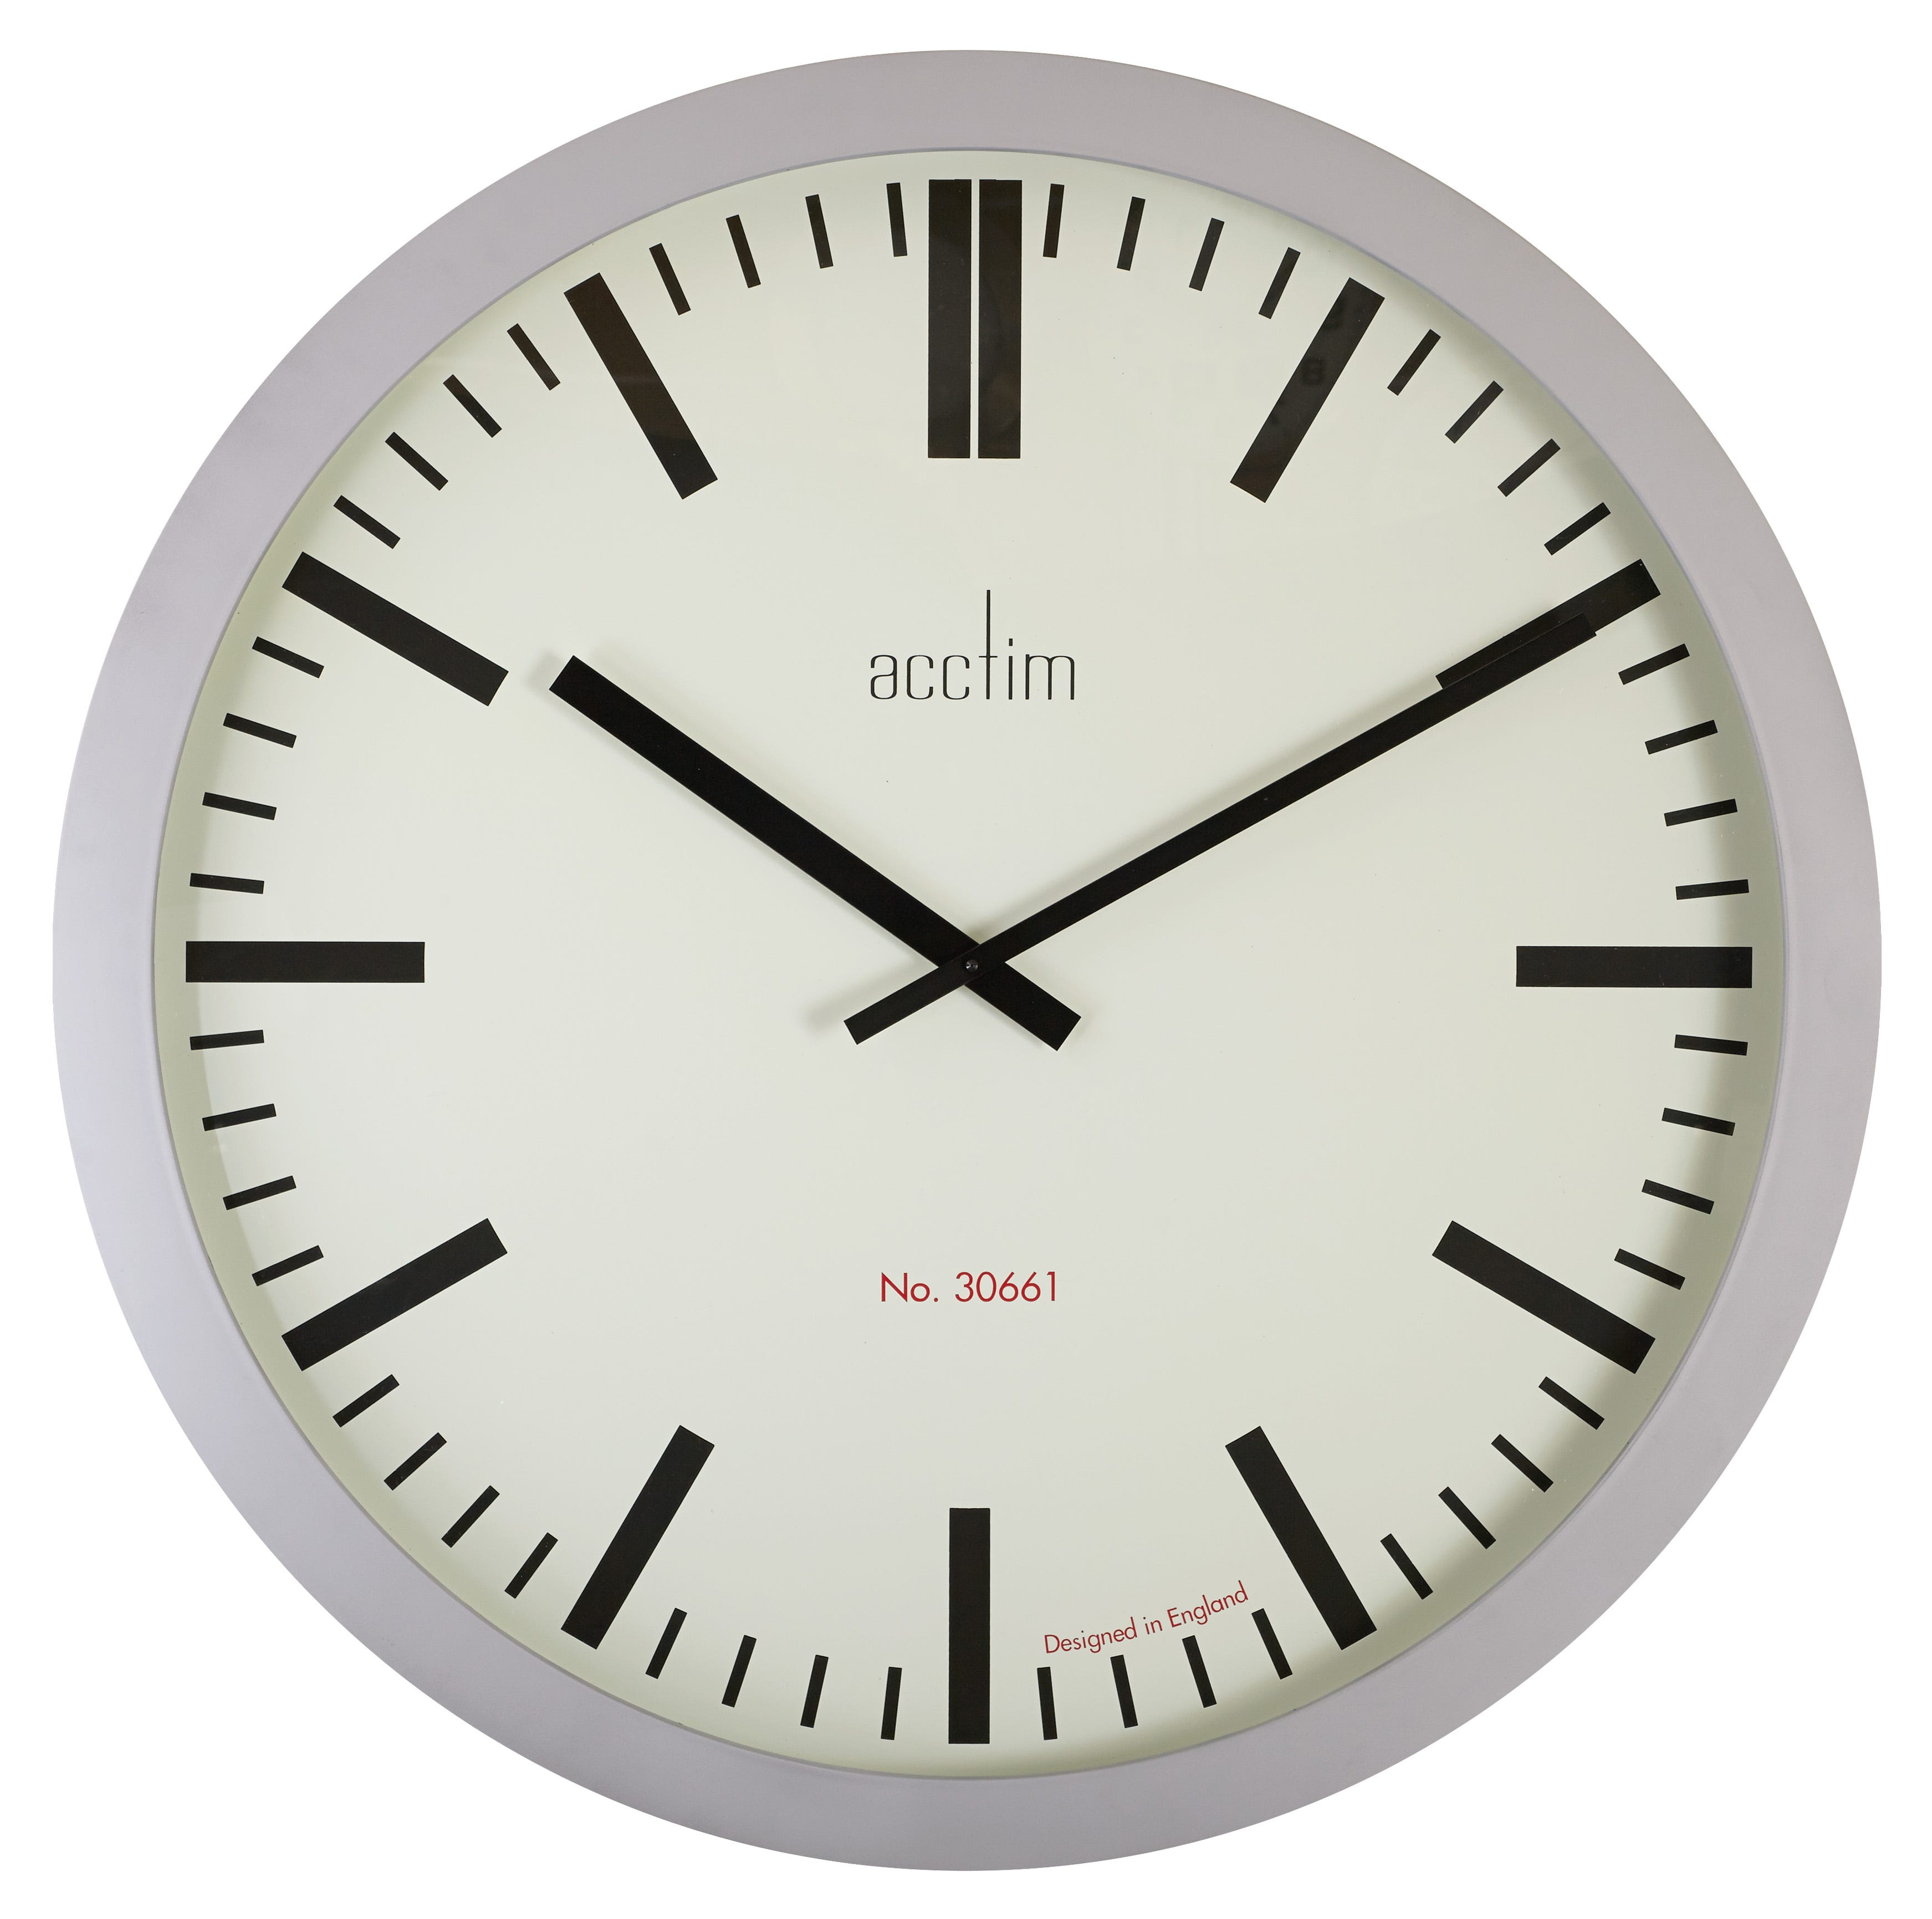 Compare cheap offers & prices of Acctim Monument 90cm Silver Baton Dial Wall Clock manufactured by Acctim